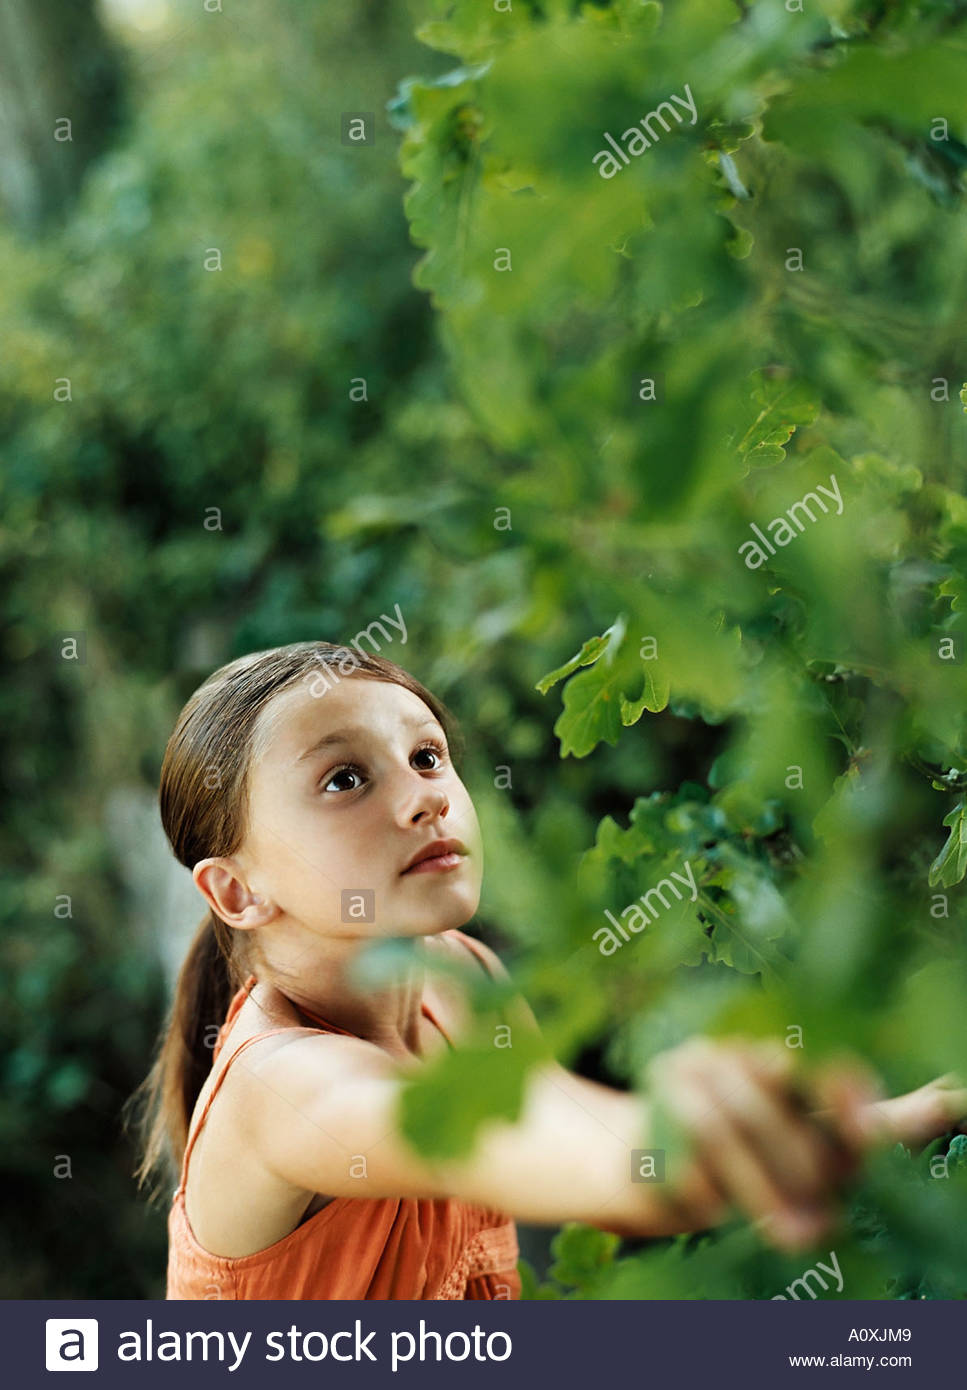 Girl looking at plant - Stock Image